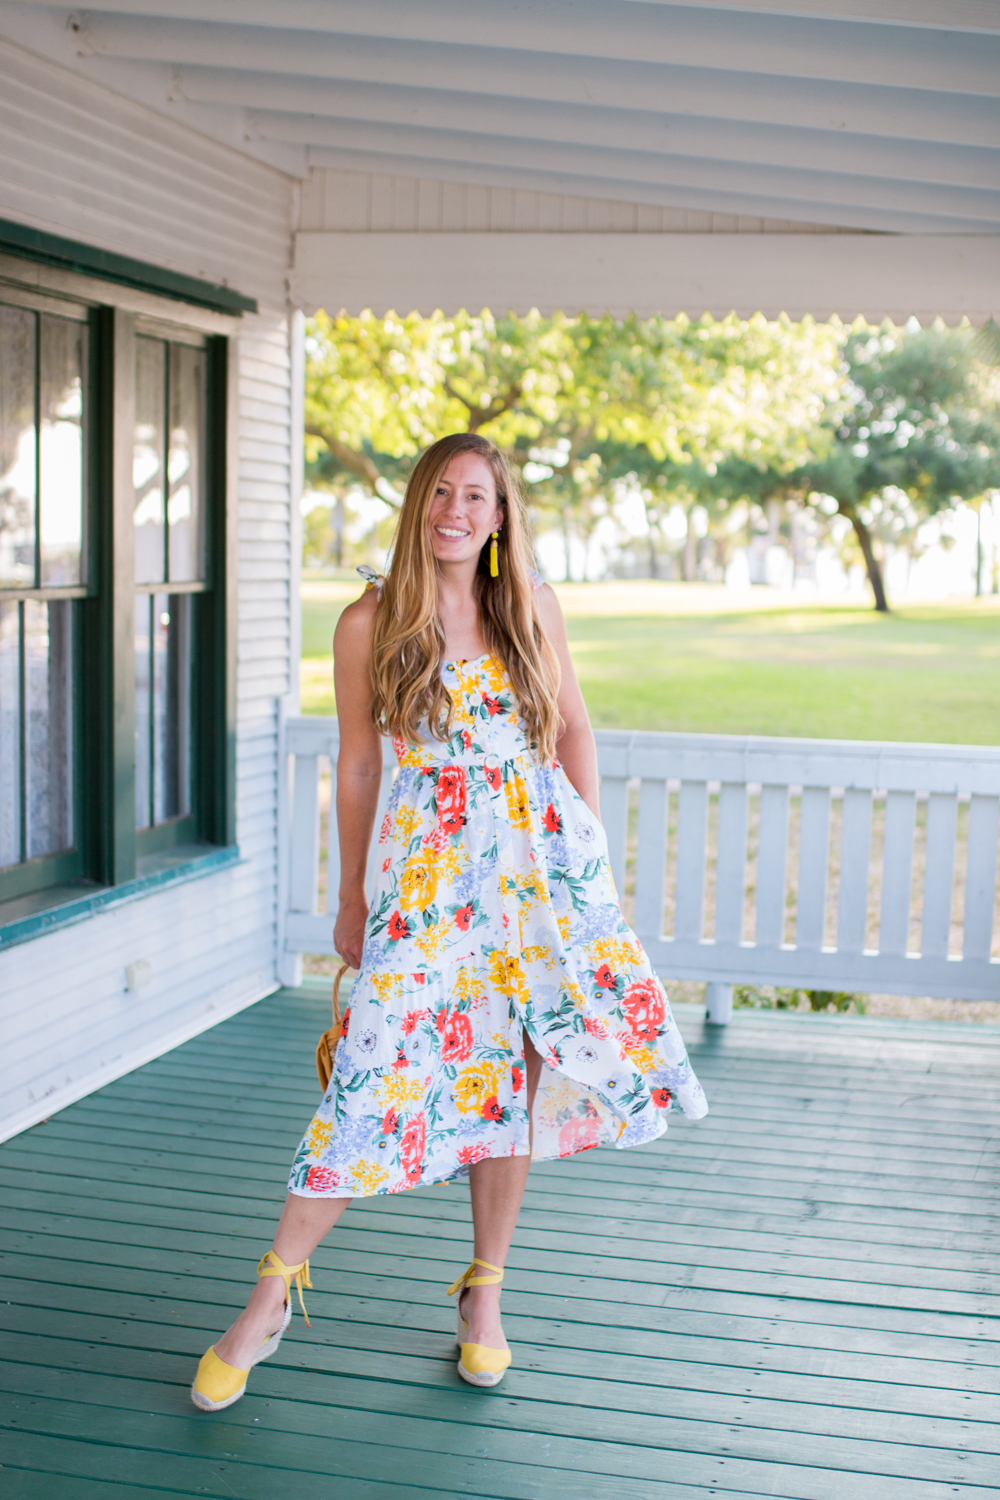 Floral Midi Dresses for Summer - Sunshine Style